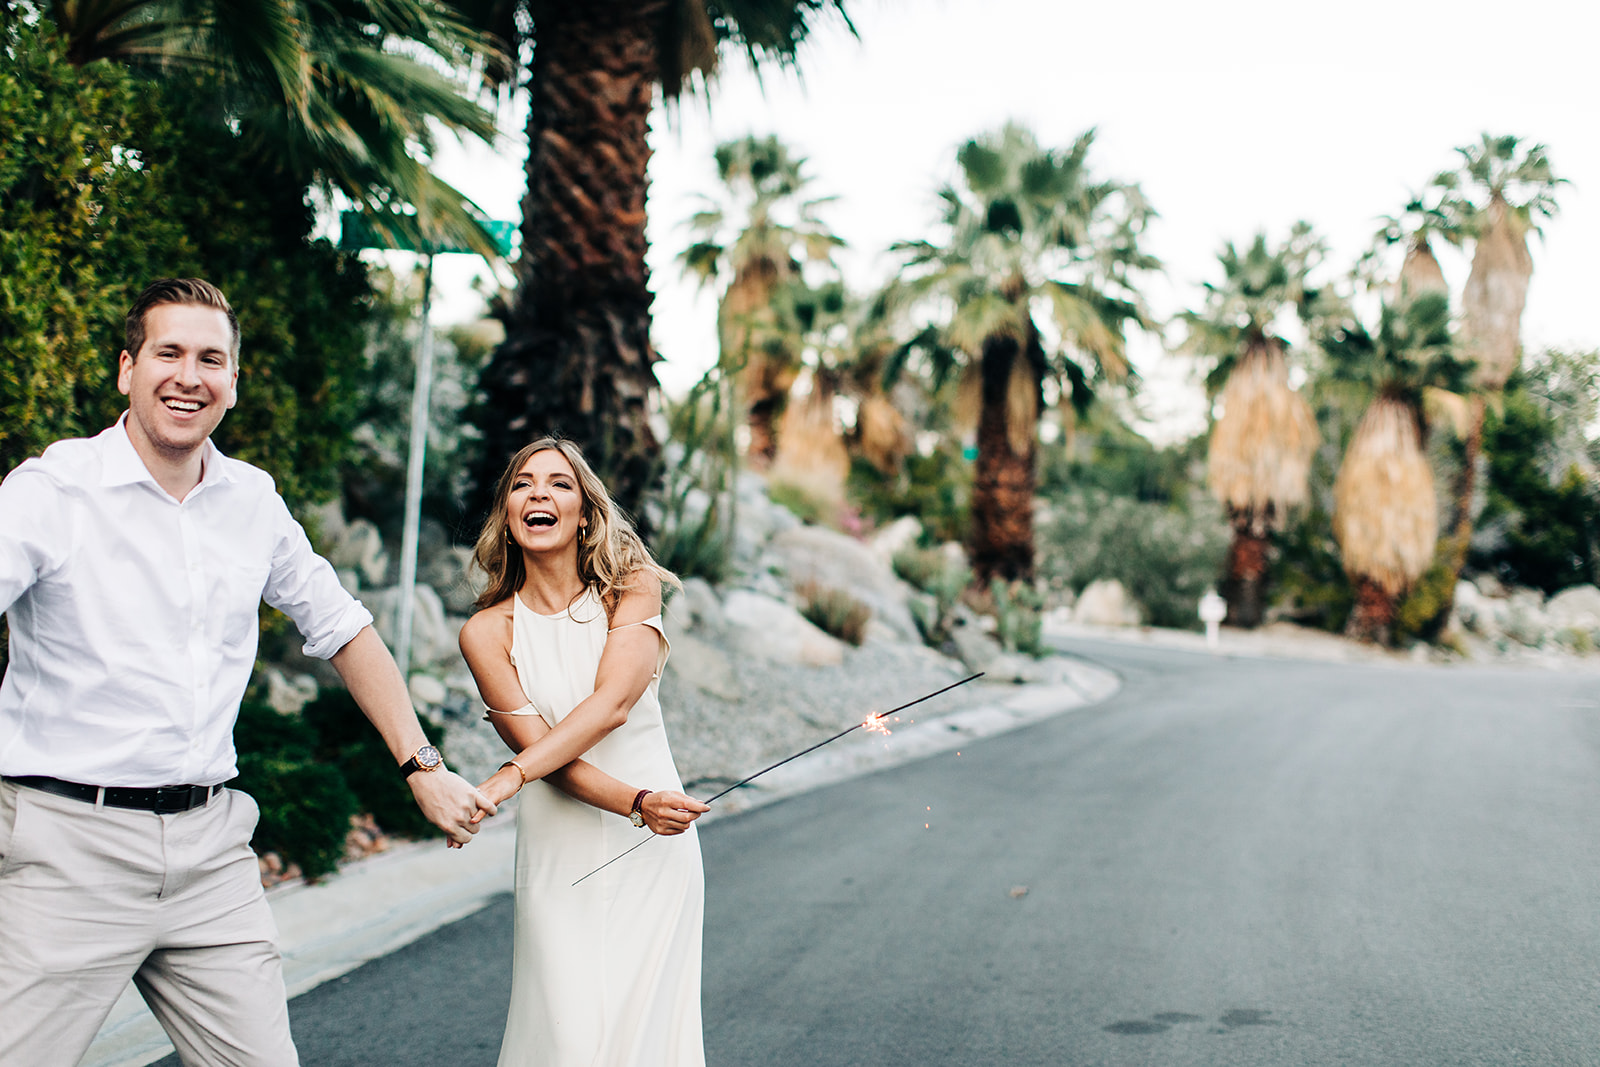 Paulina-Drew_Palm-Springs-Engagement-Photos_Clarisse-Rae_Southern-California-Wedding-Photographer-50